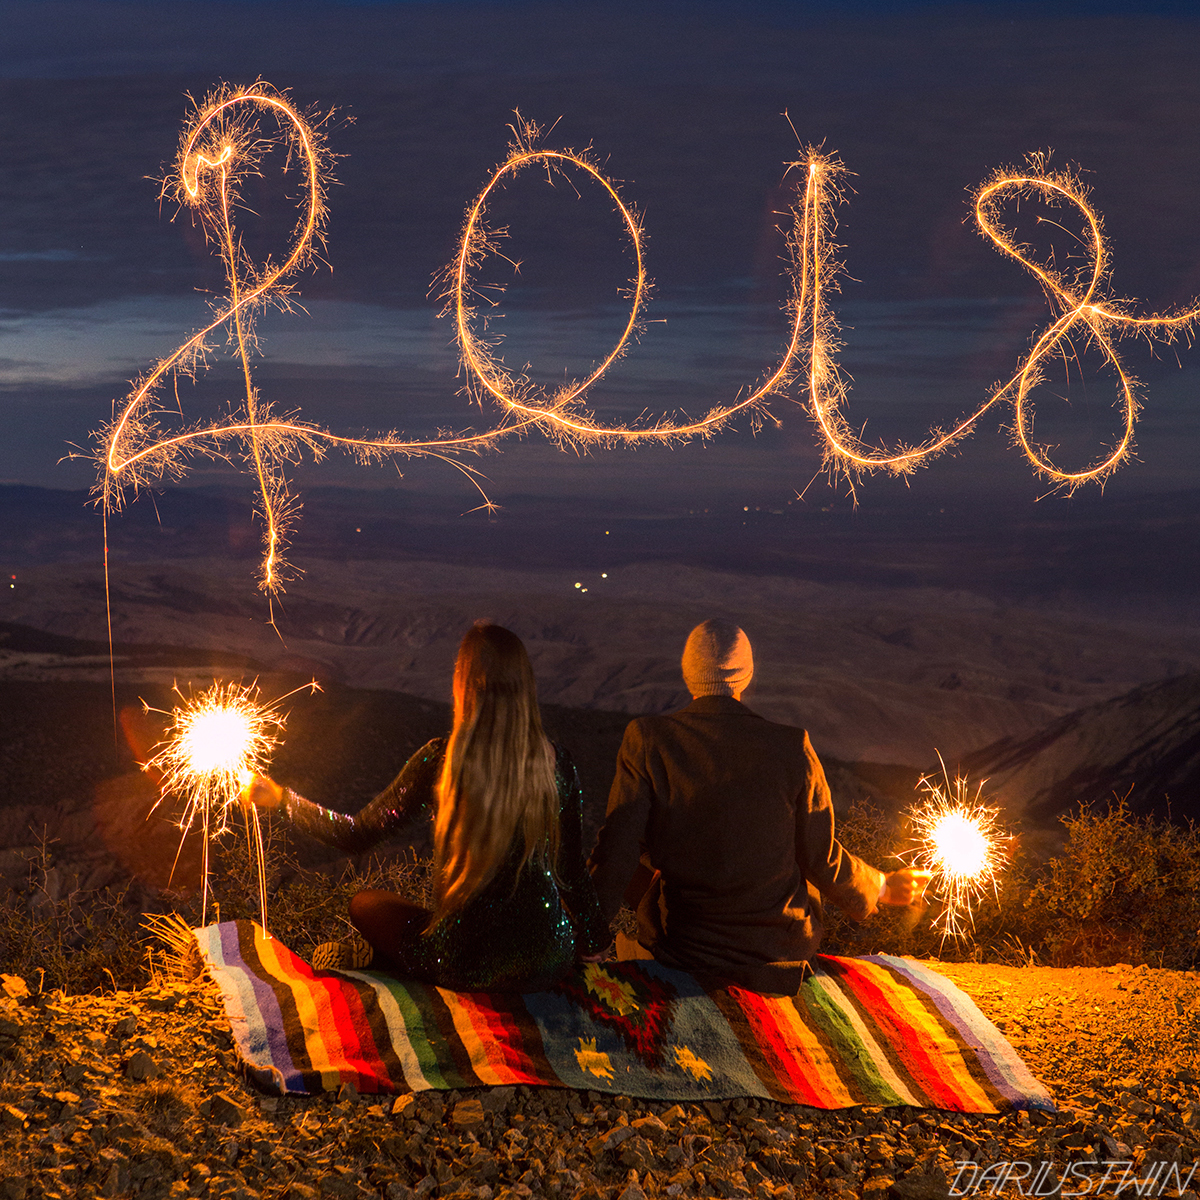 2018_winter_dariustwin_sparklers_lightpainting_photography_view_couple_love_slowshutter_romance_night_romantic.jpg